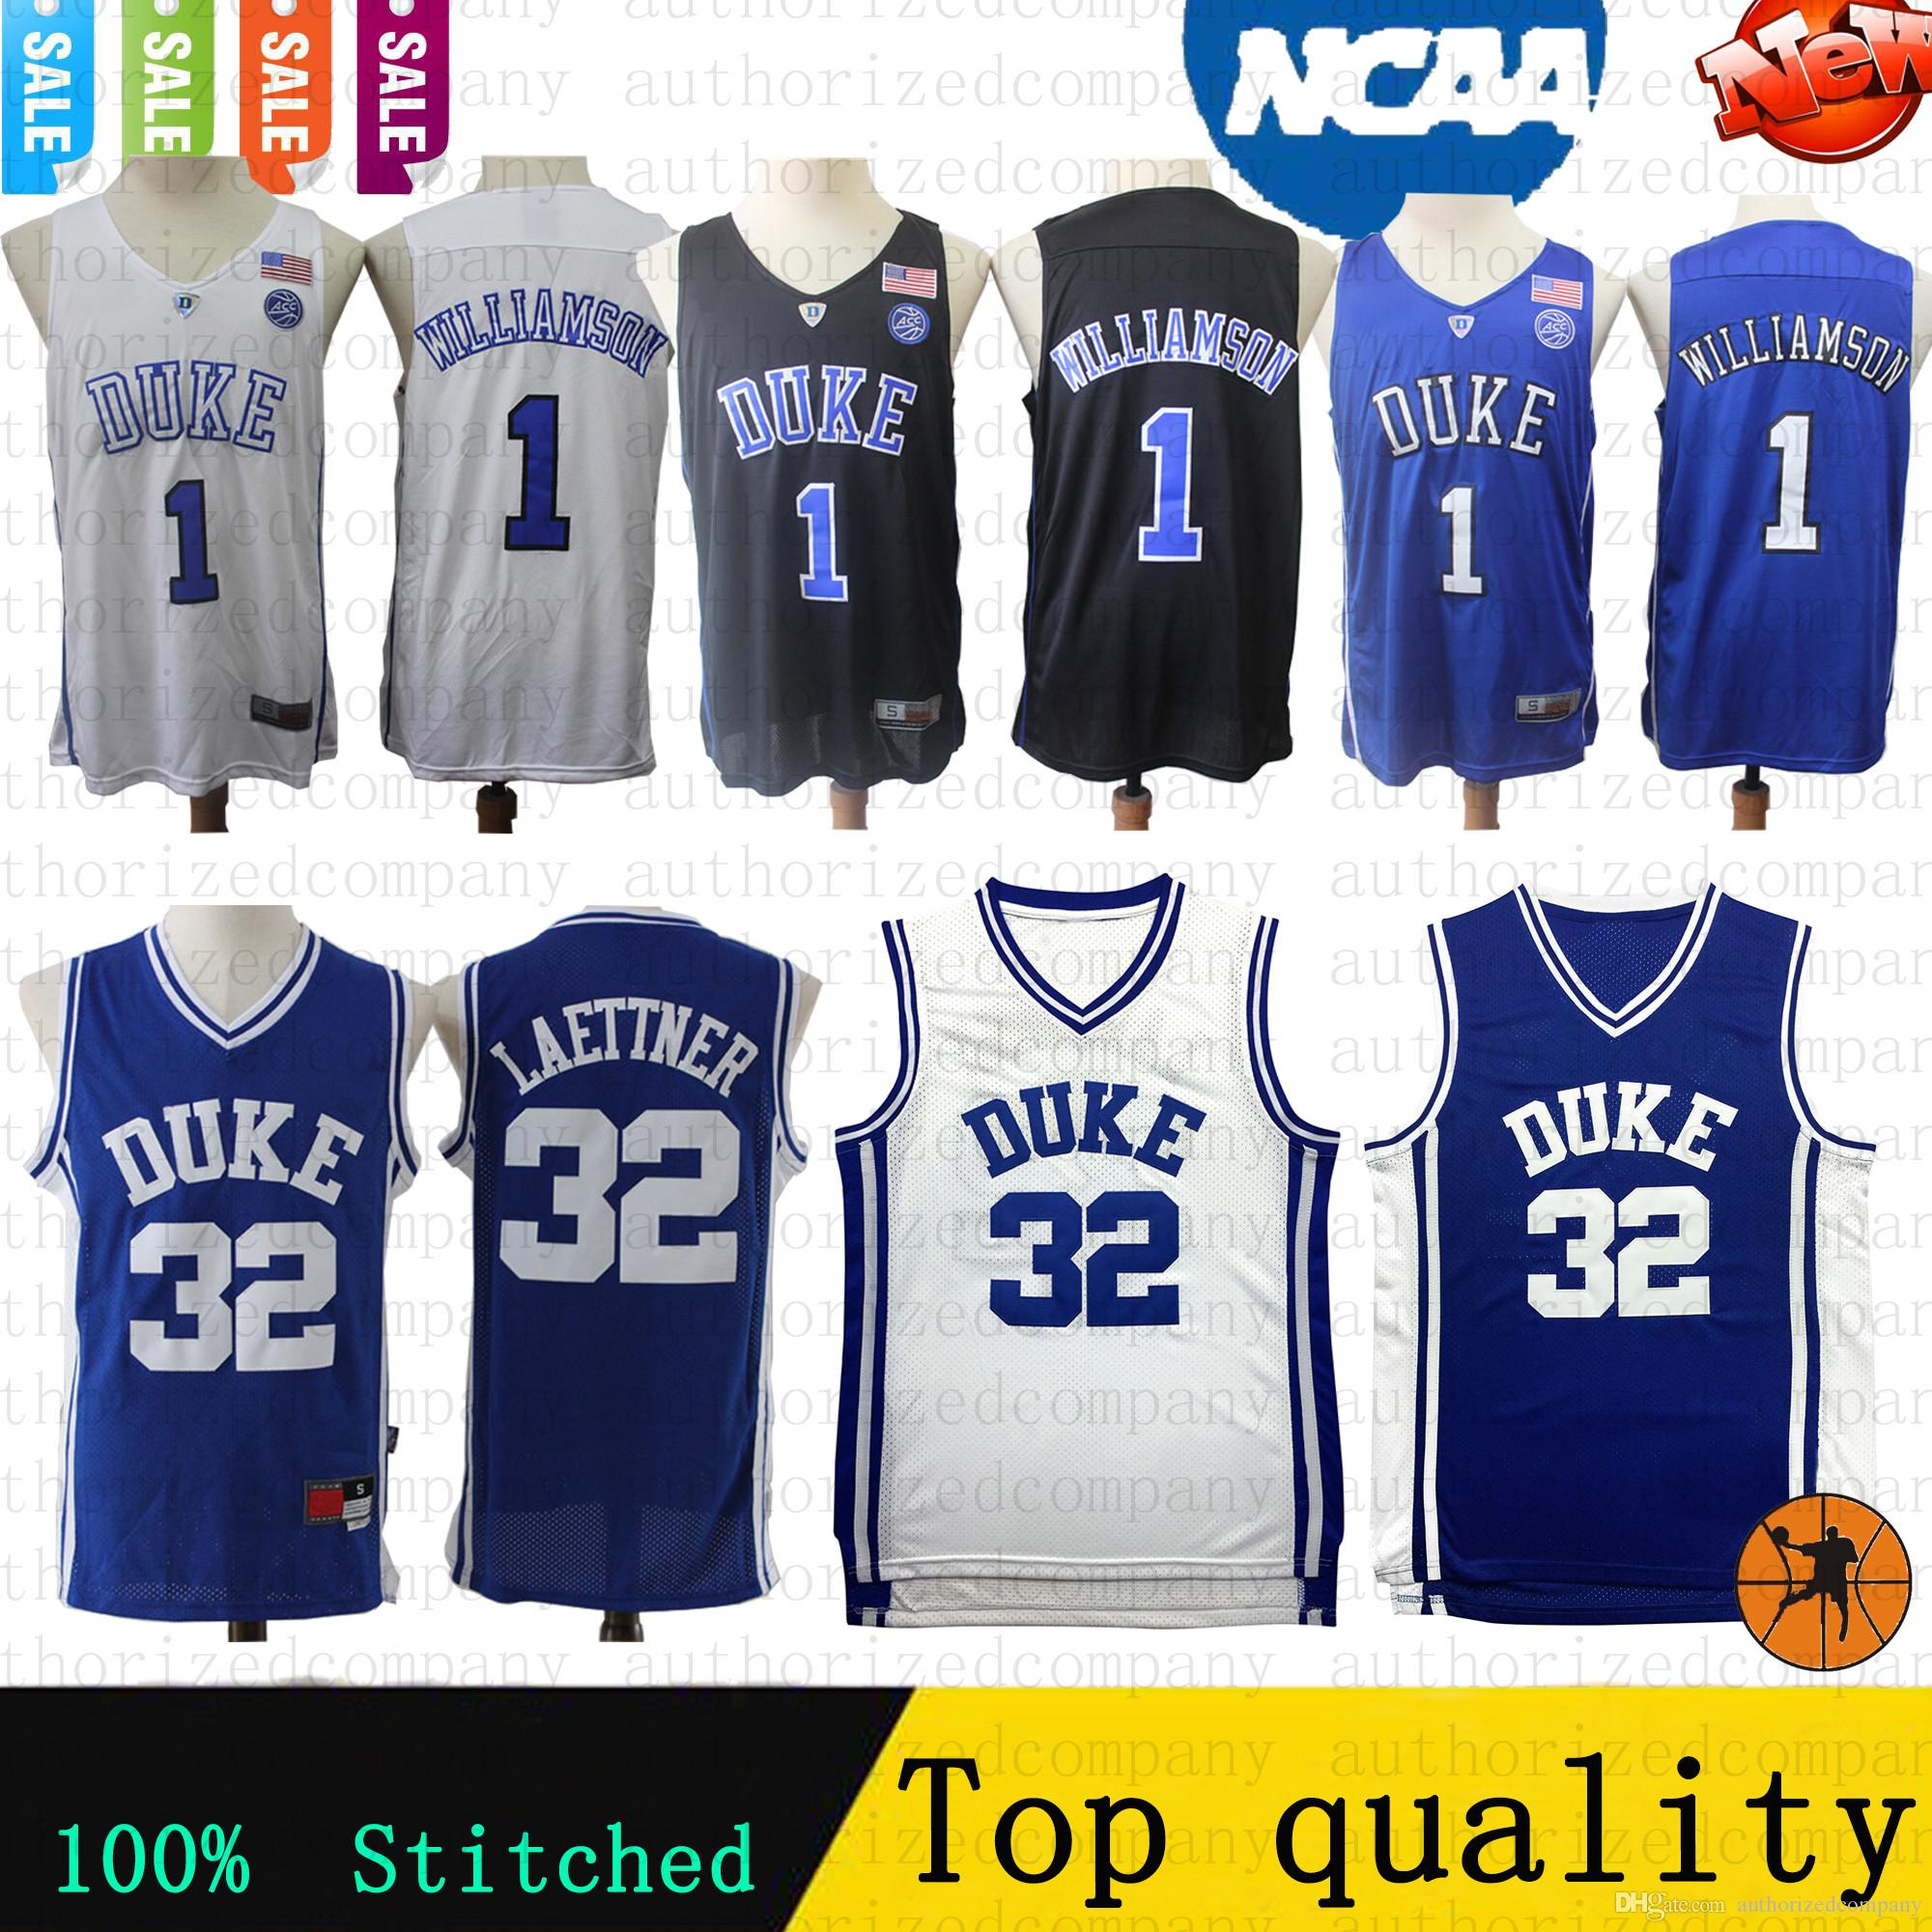 a2ed7907e 2019 2019 New NCAA Retro Basketball Jersey 1 Zion Williamson 32 Christian  Donald Laettner Duke Blue Devils College Jerseys 100% Stitched From ...